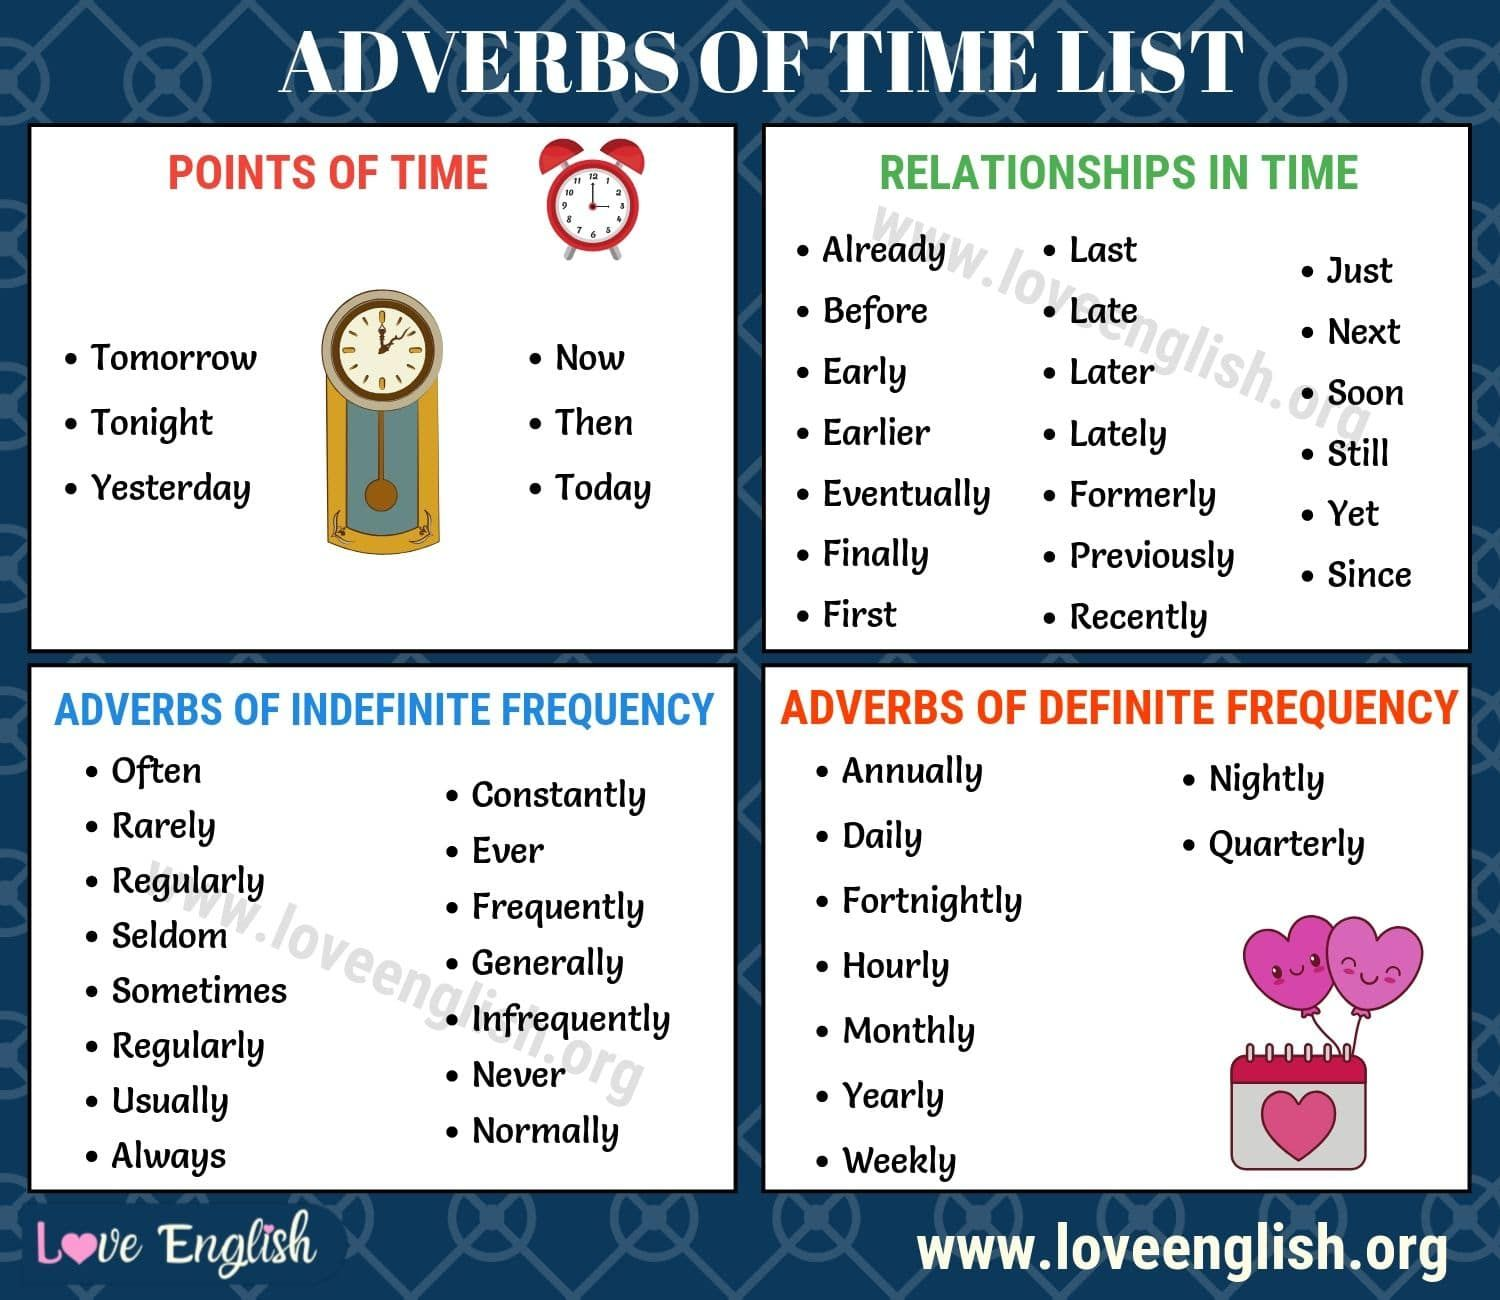 Adverbs Of Time Learn List Of 50 Popular Time Adverbs In